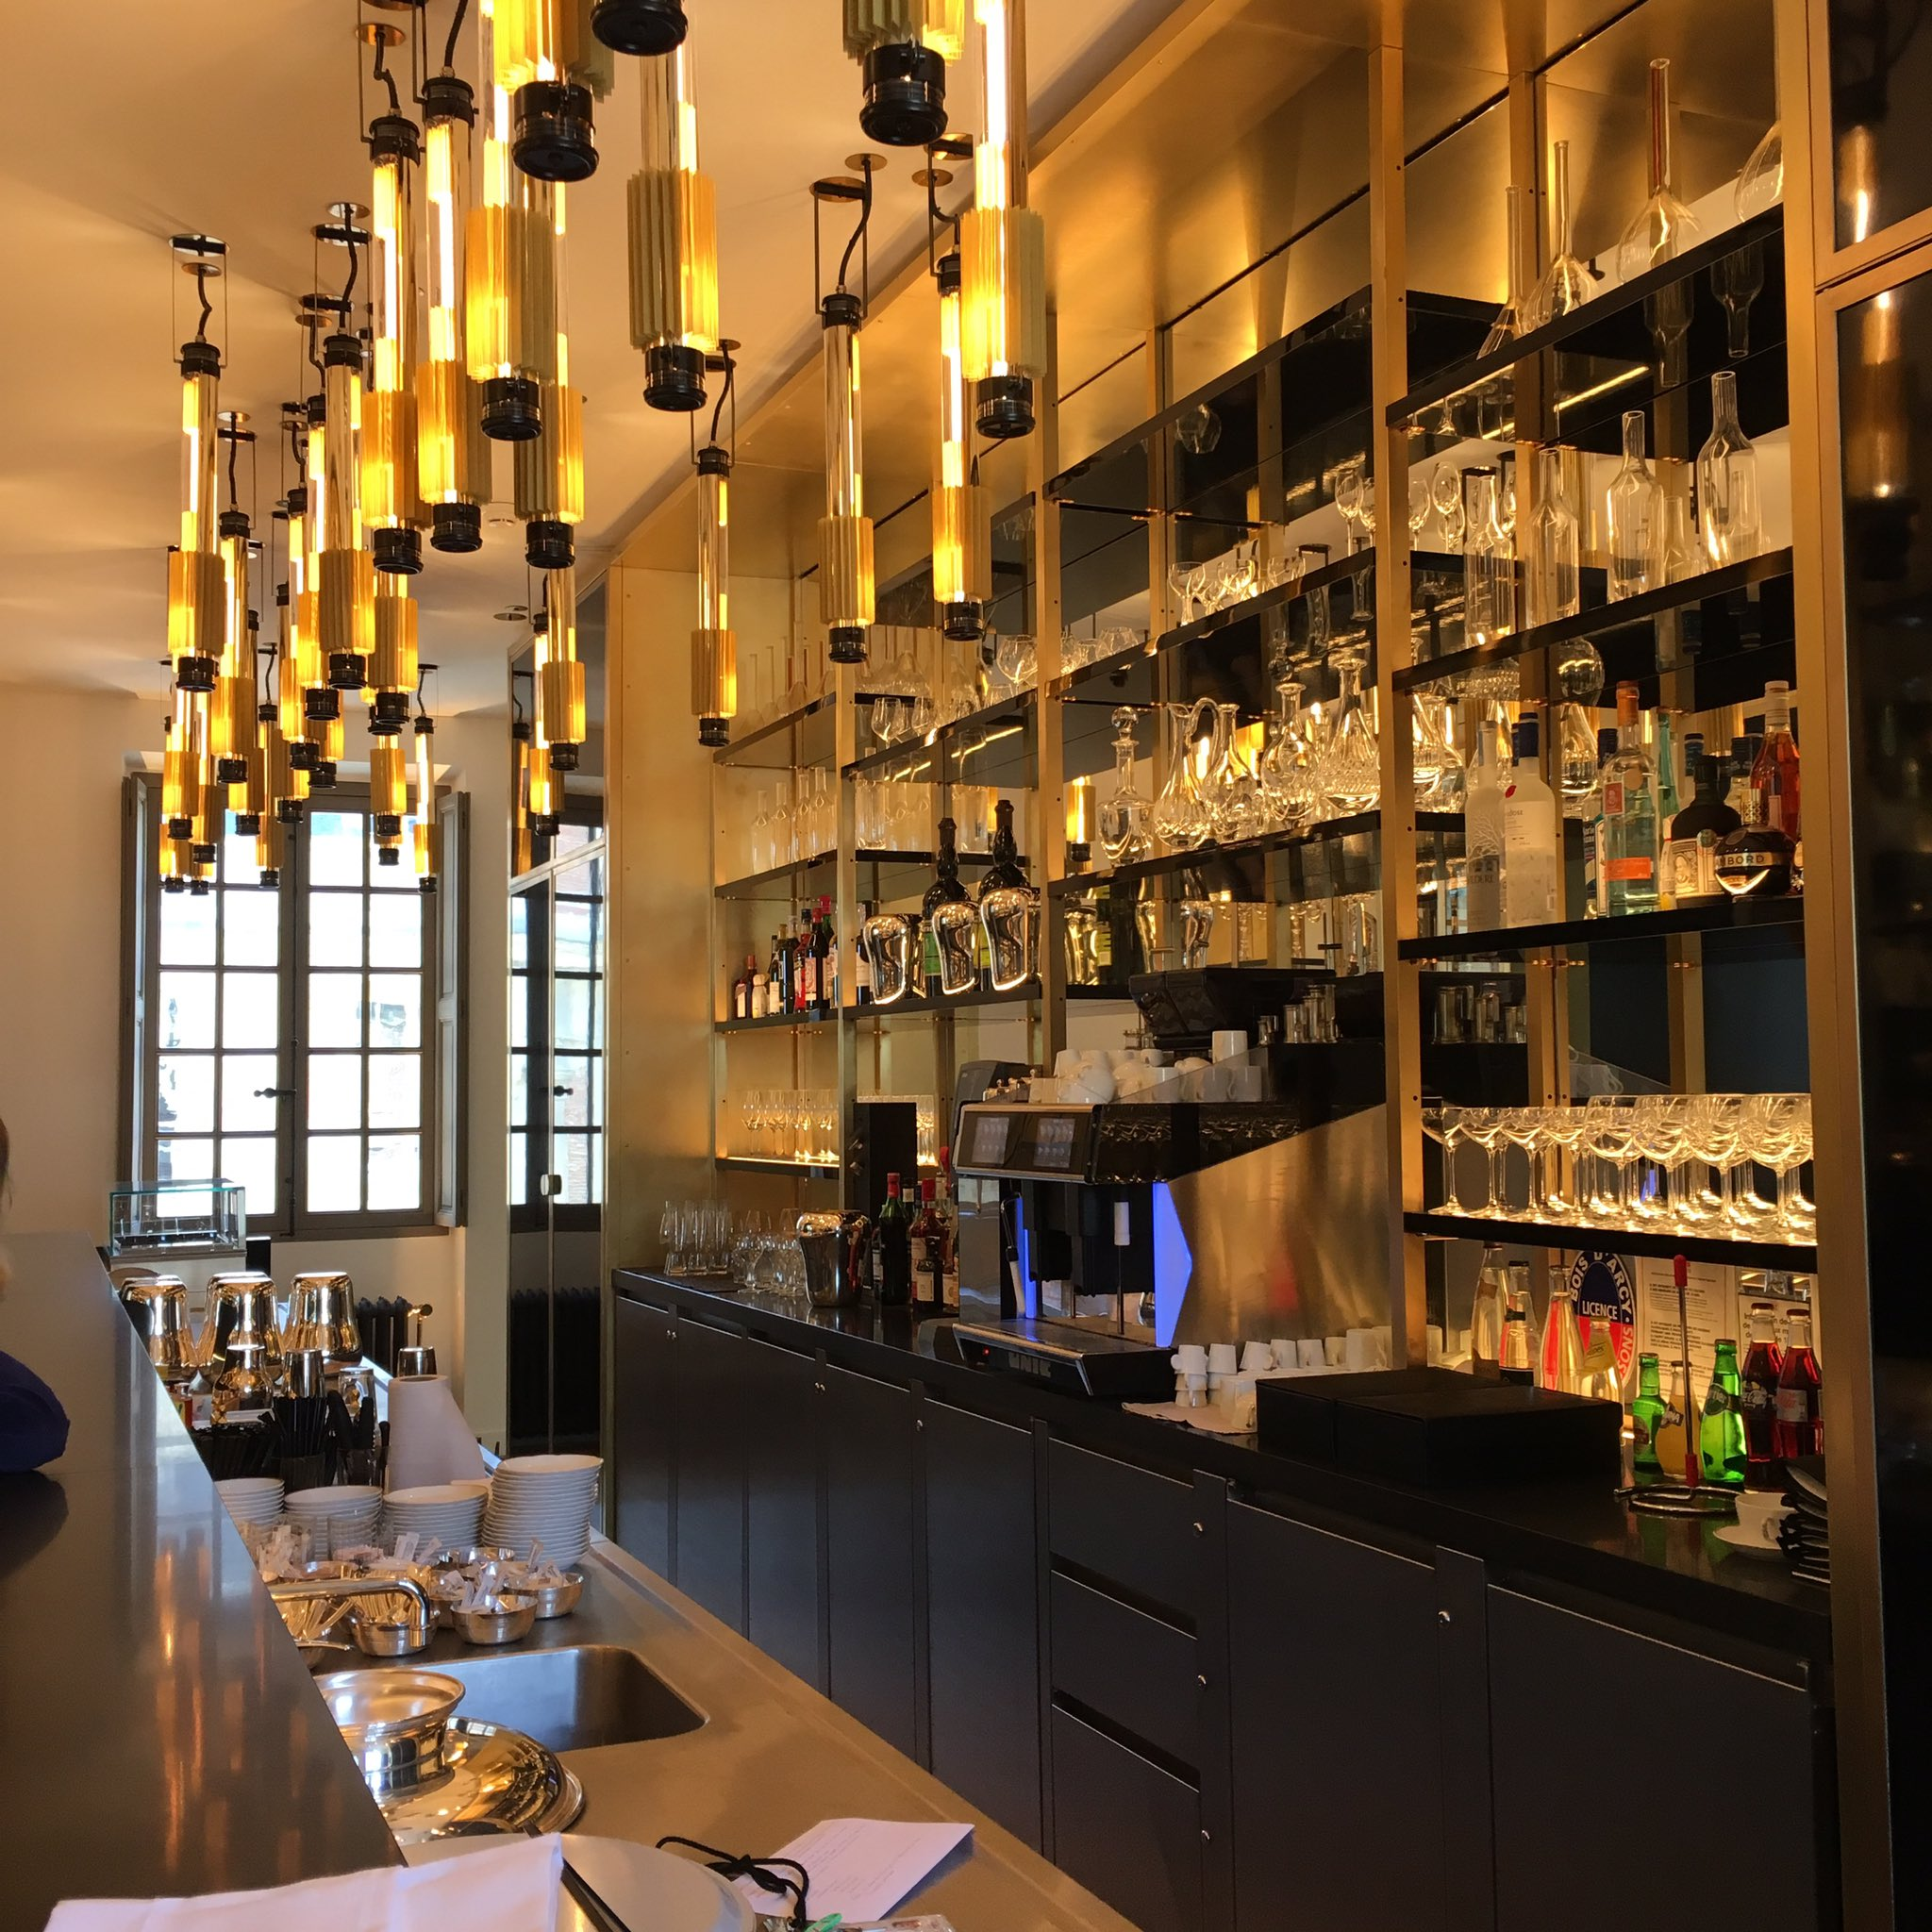 versaillesinmypocket on twitter le magnifique bar du restaurant ore alain ducasse au ch teau. Black Bedroom Furniture Sets. Home Design Ideas